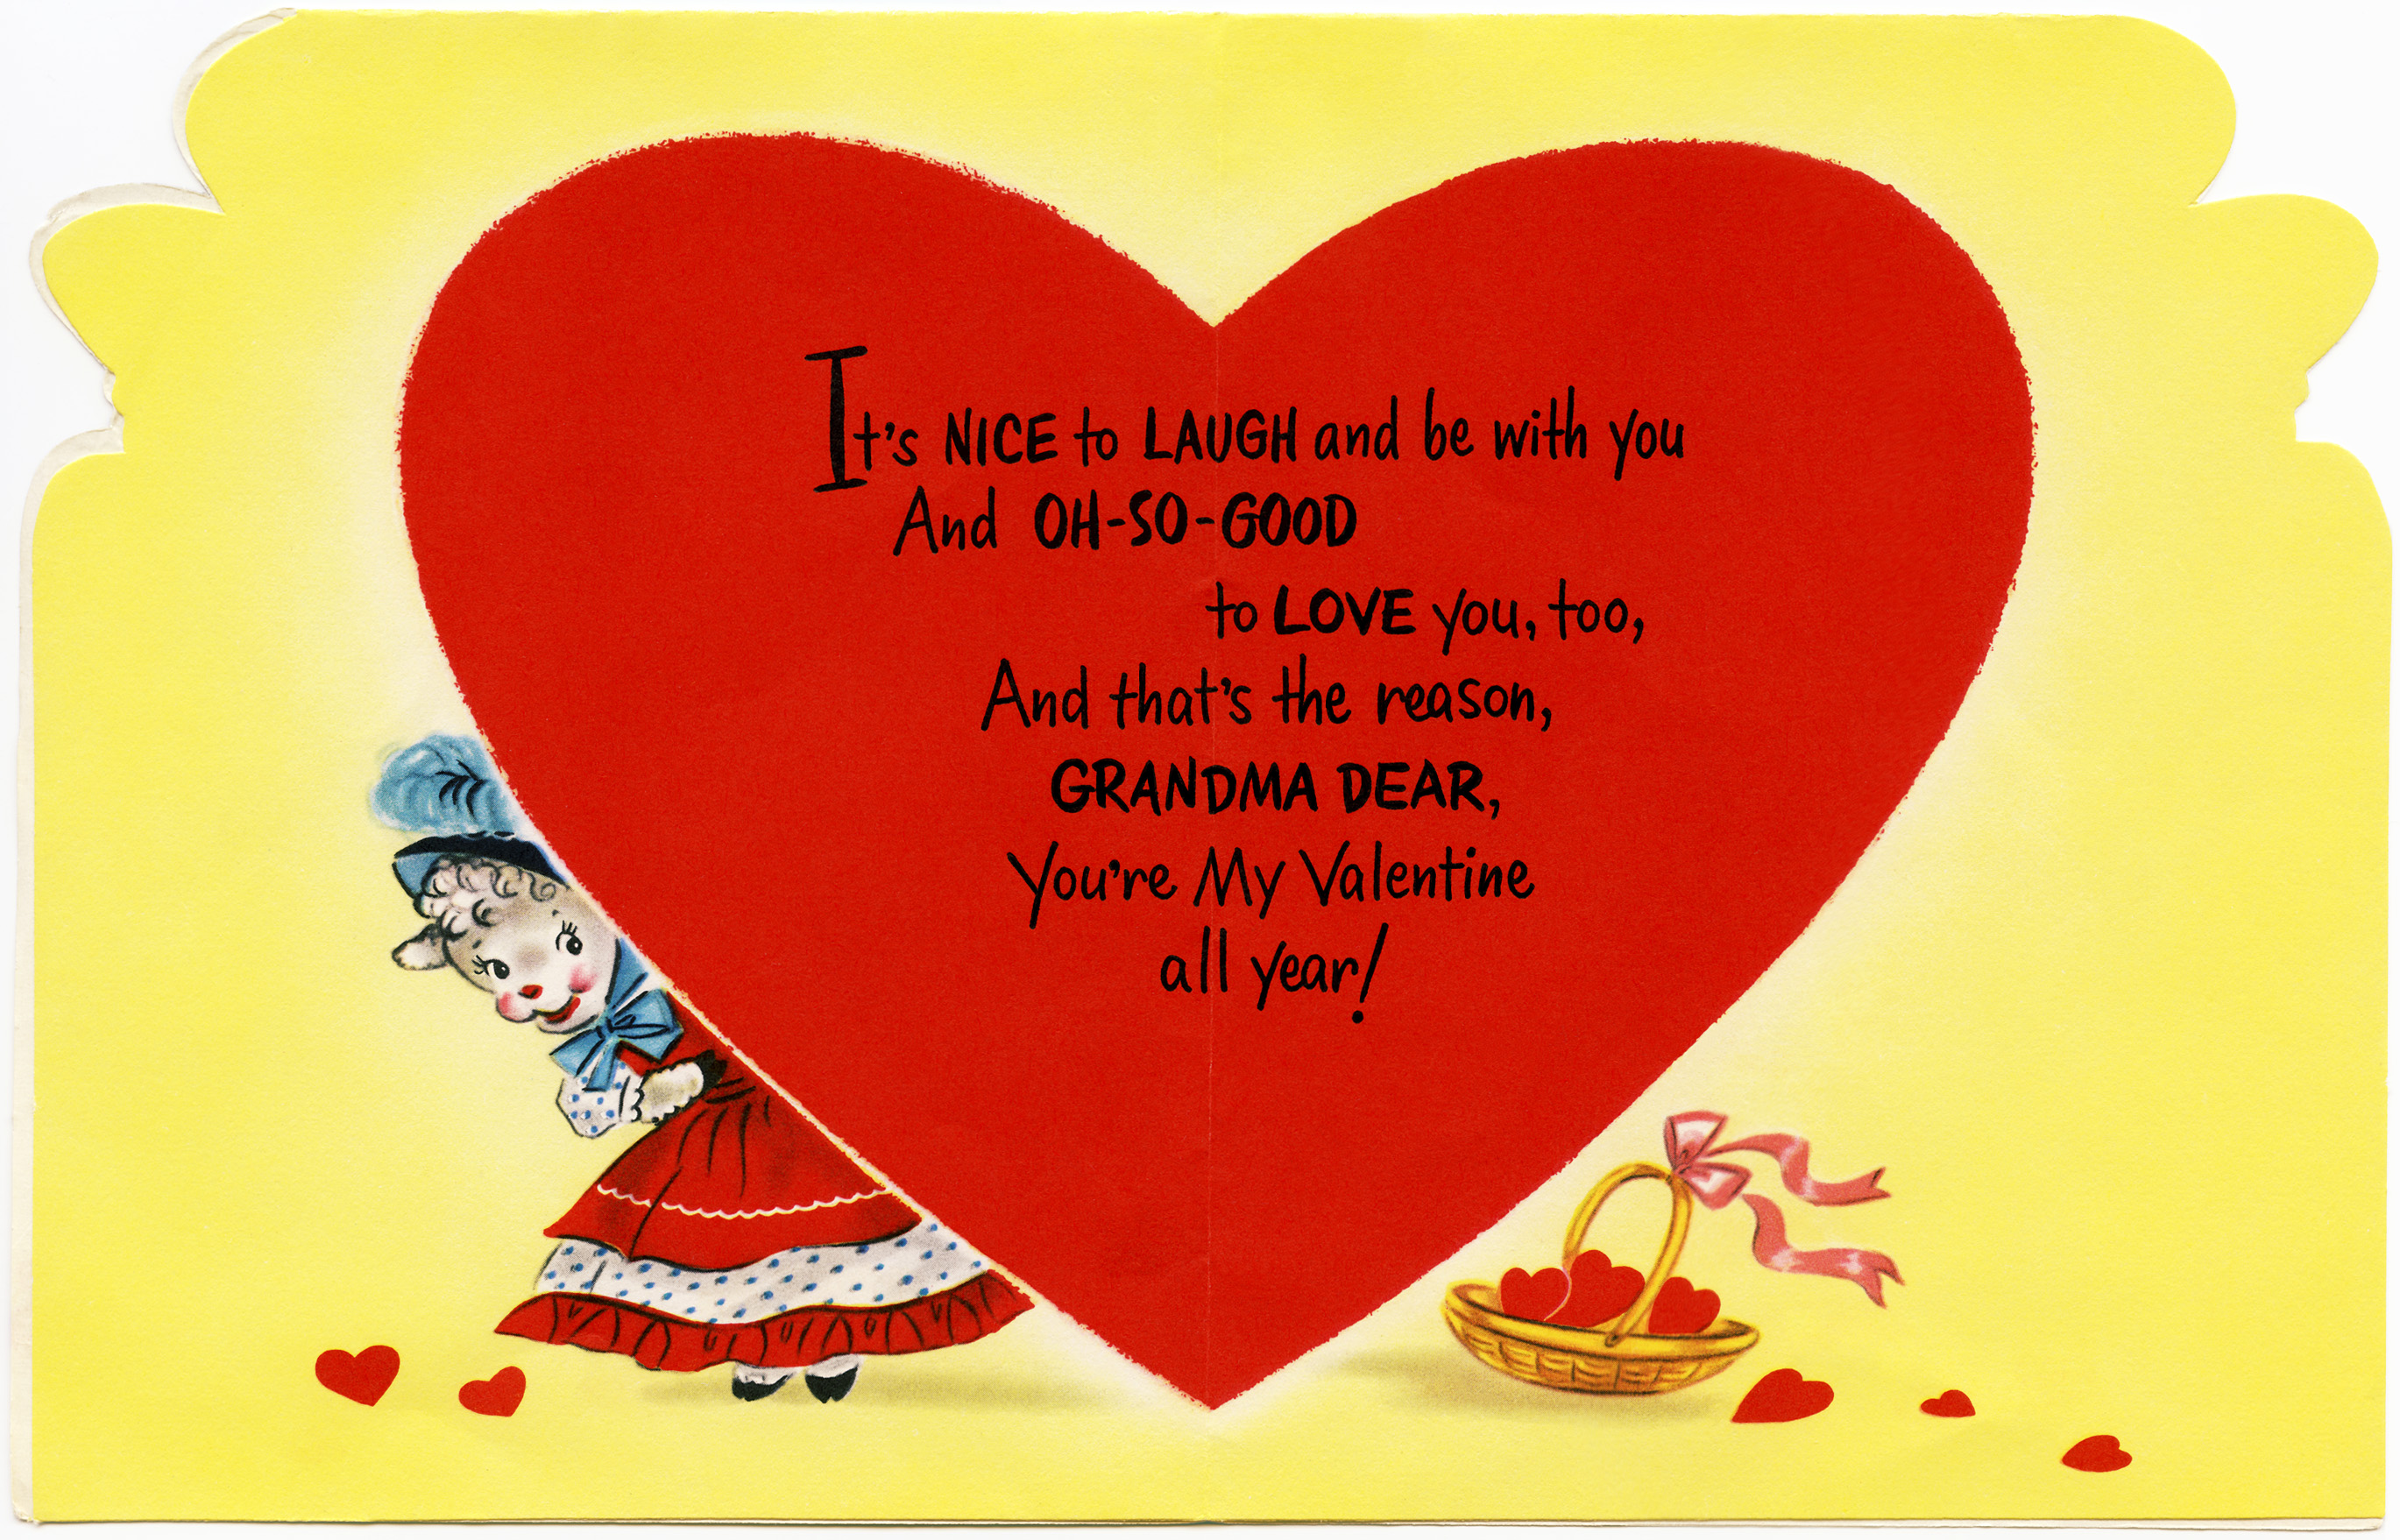 Valentine Quotes For Grandma Grandparents grandchildren grandma